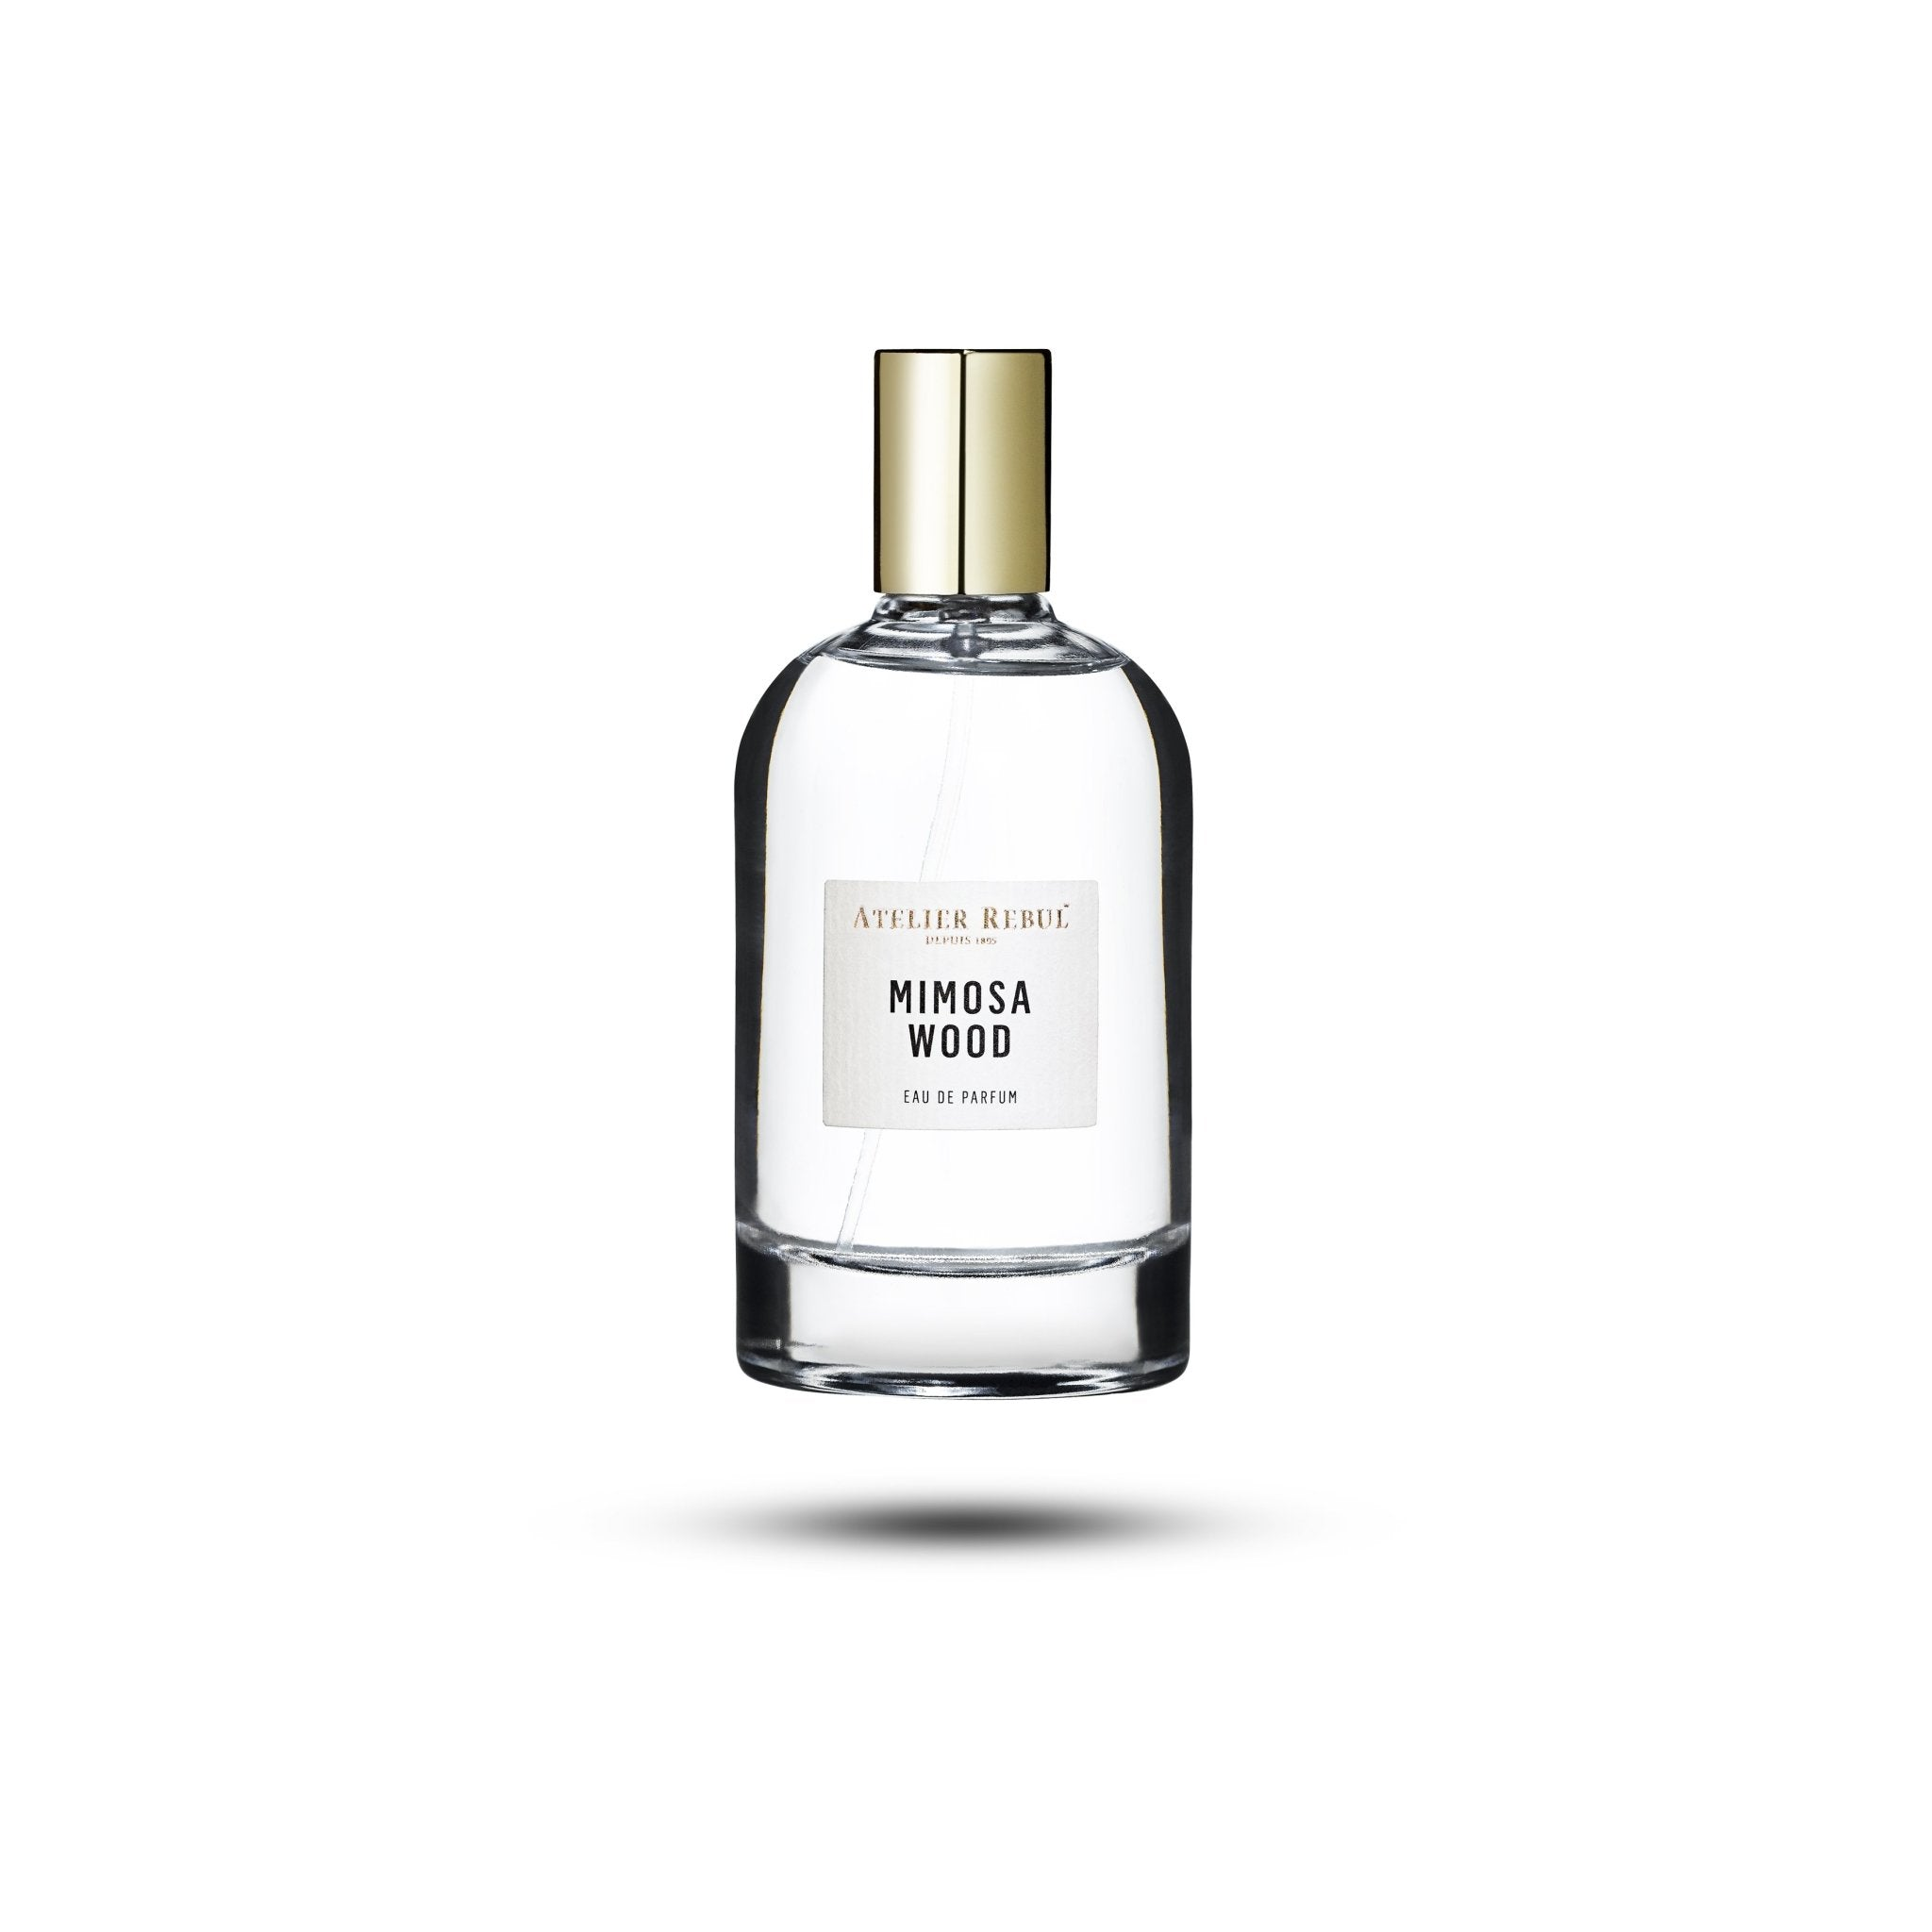 Mimosa Wood 100ml Eau de Parfum for Women - Atelier Rebul